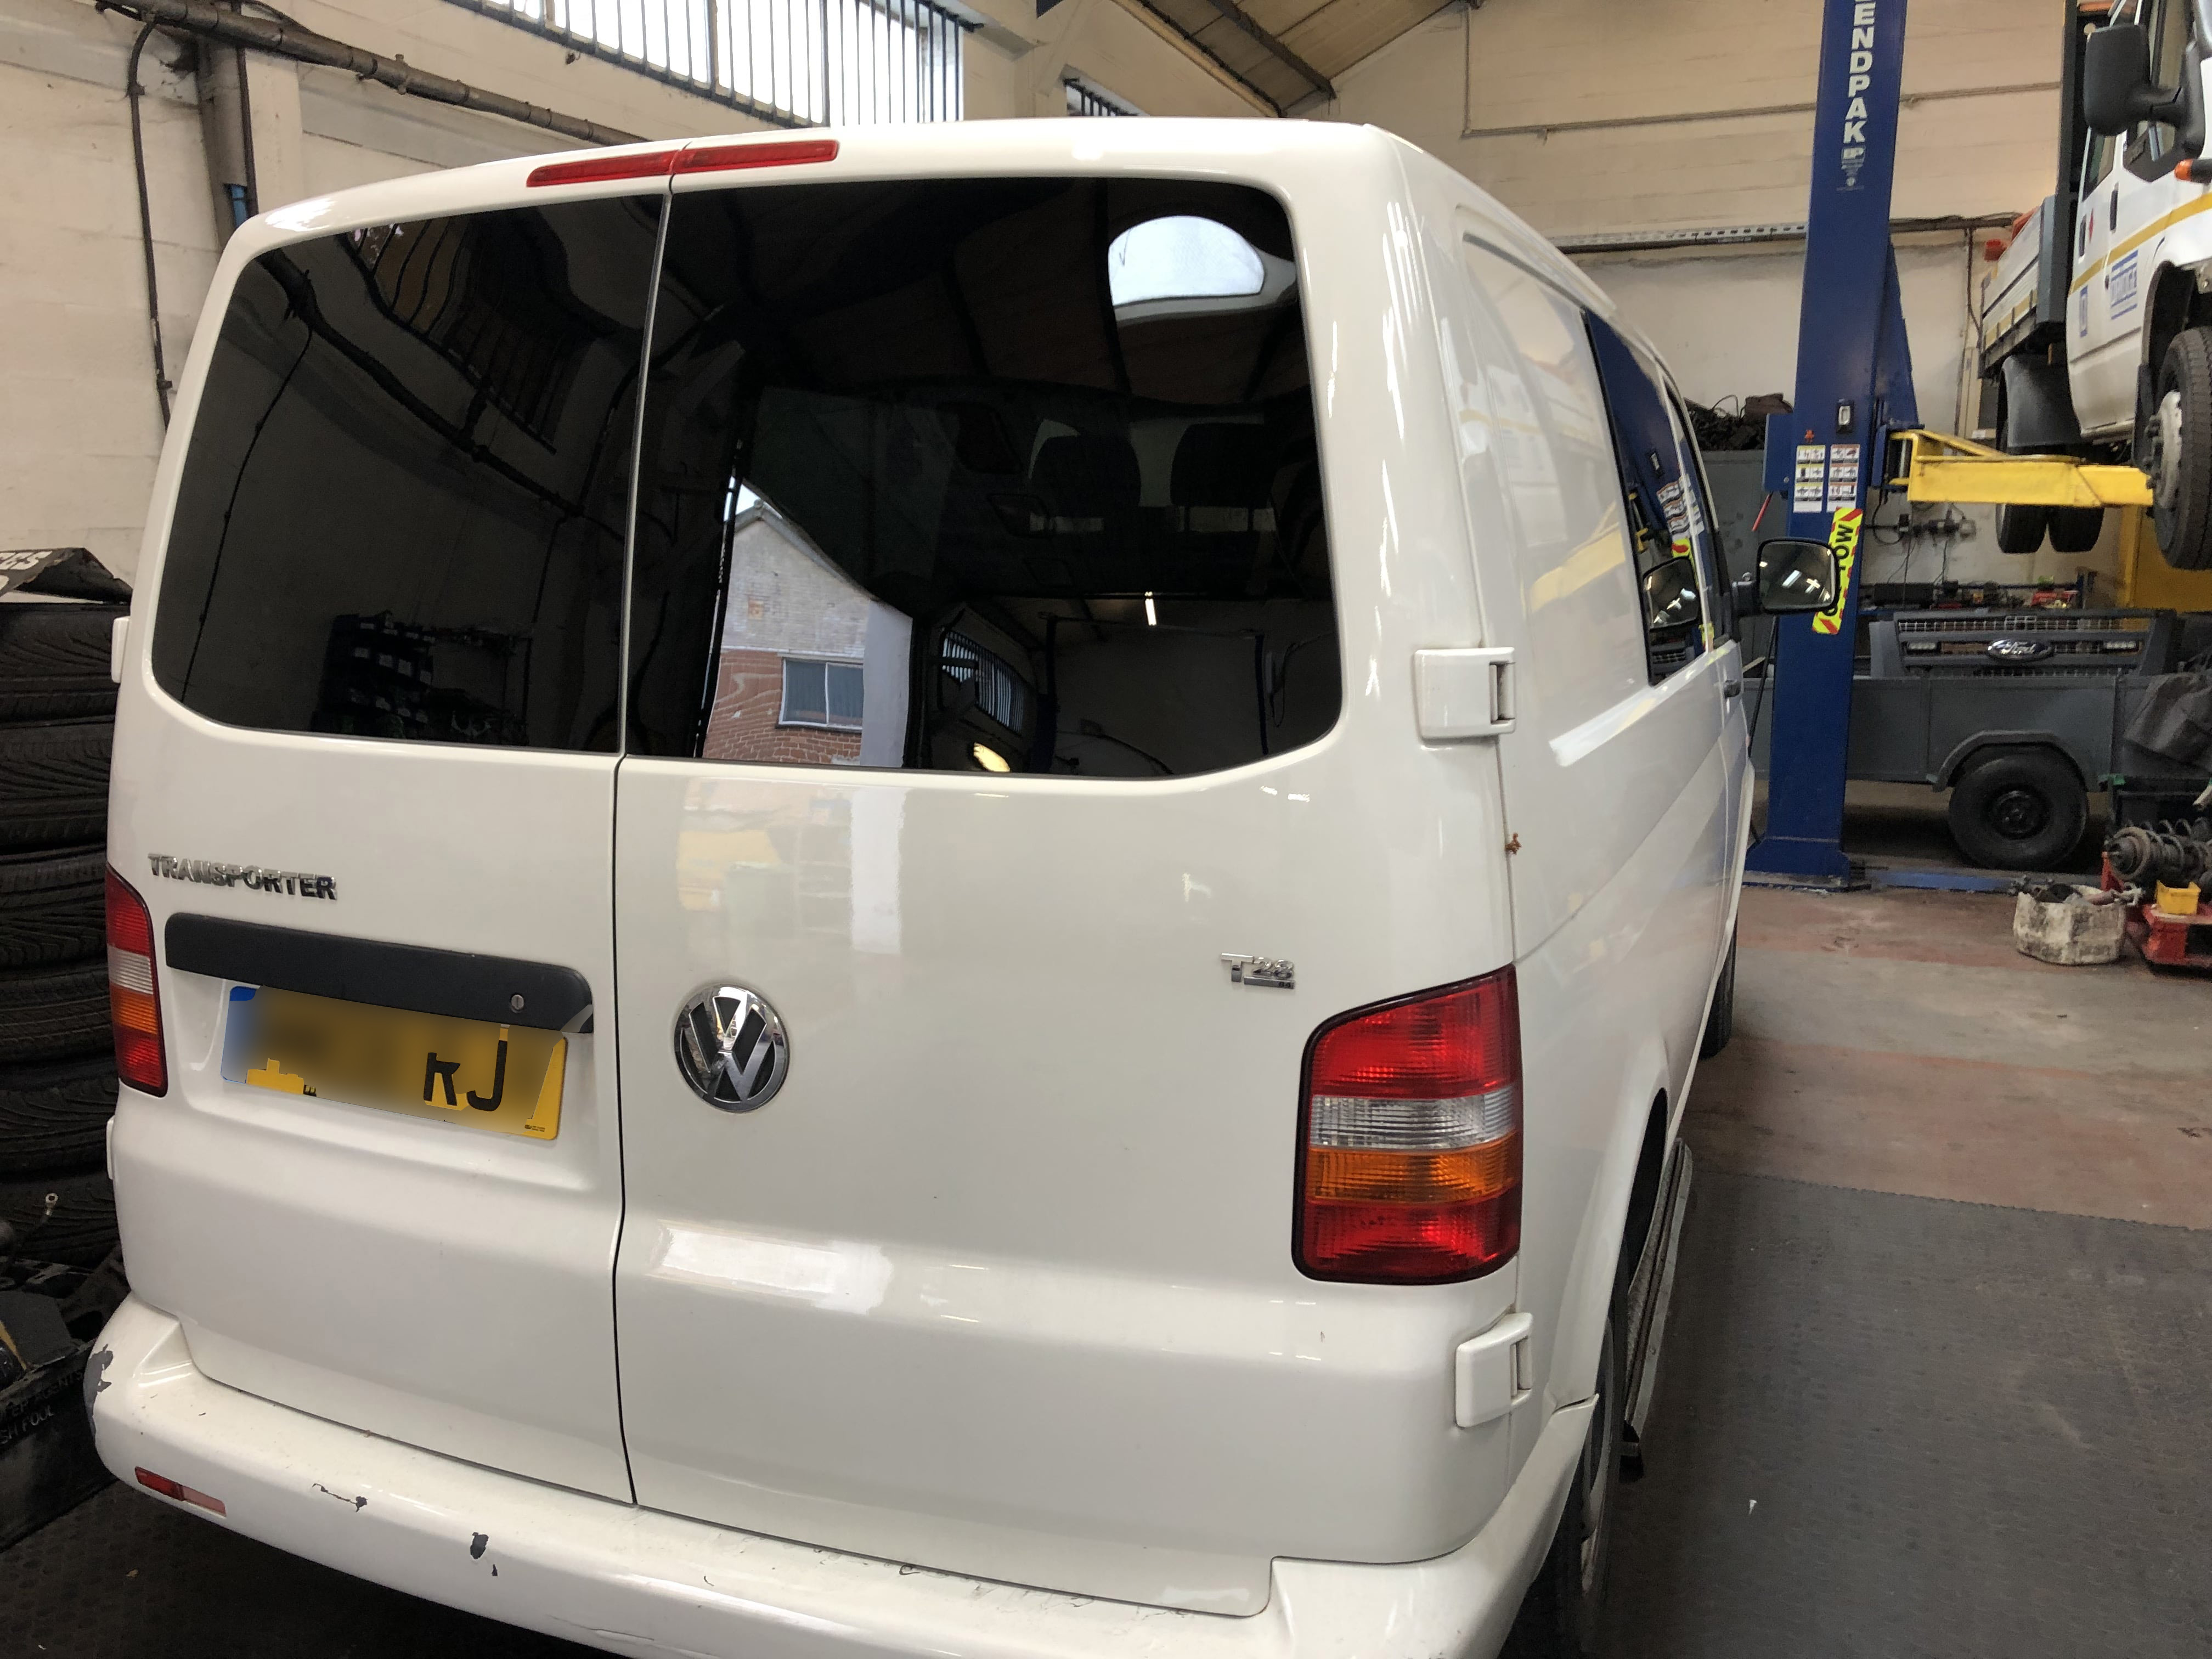 VW T5 van conversion with privacy windows.